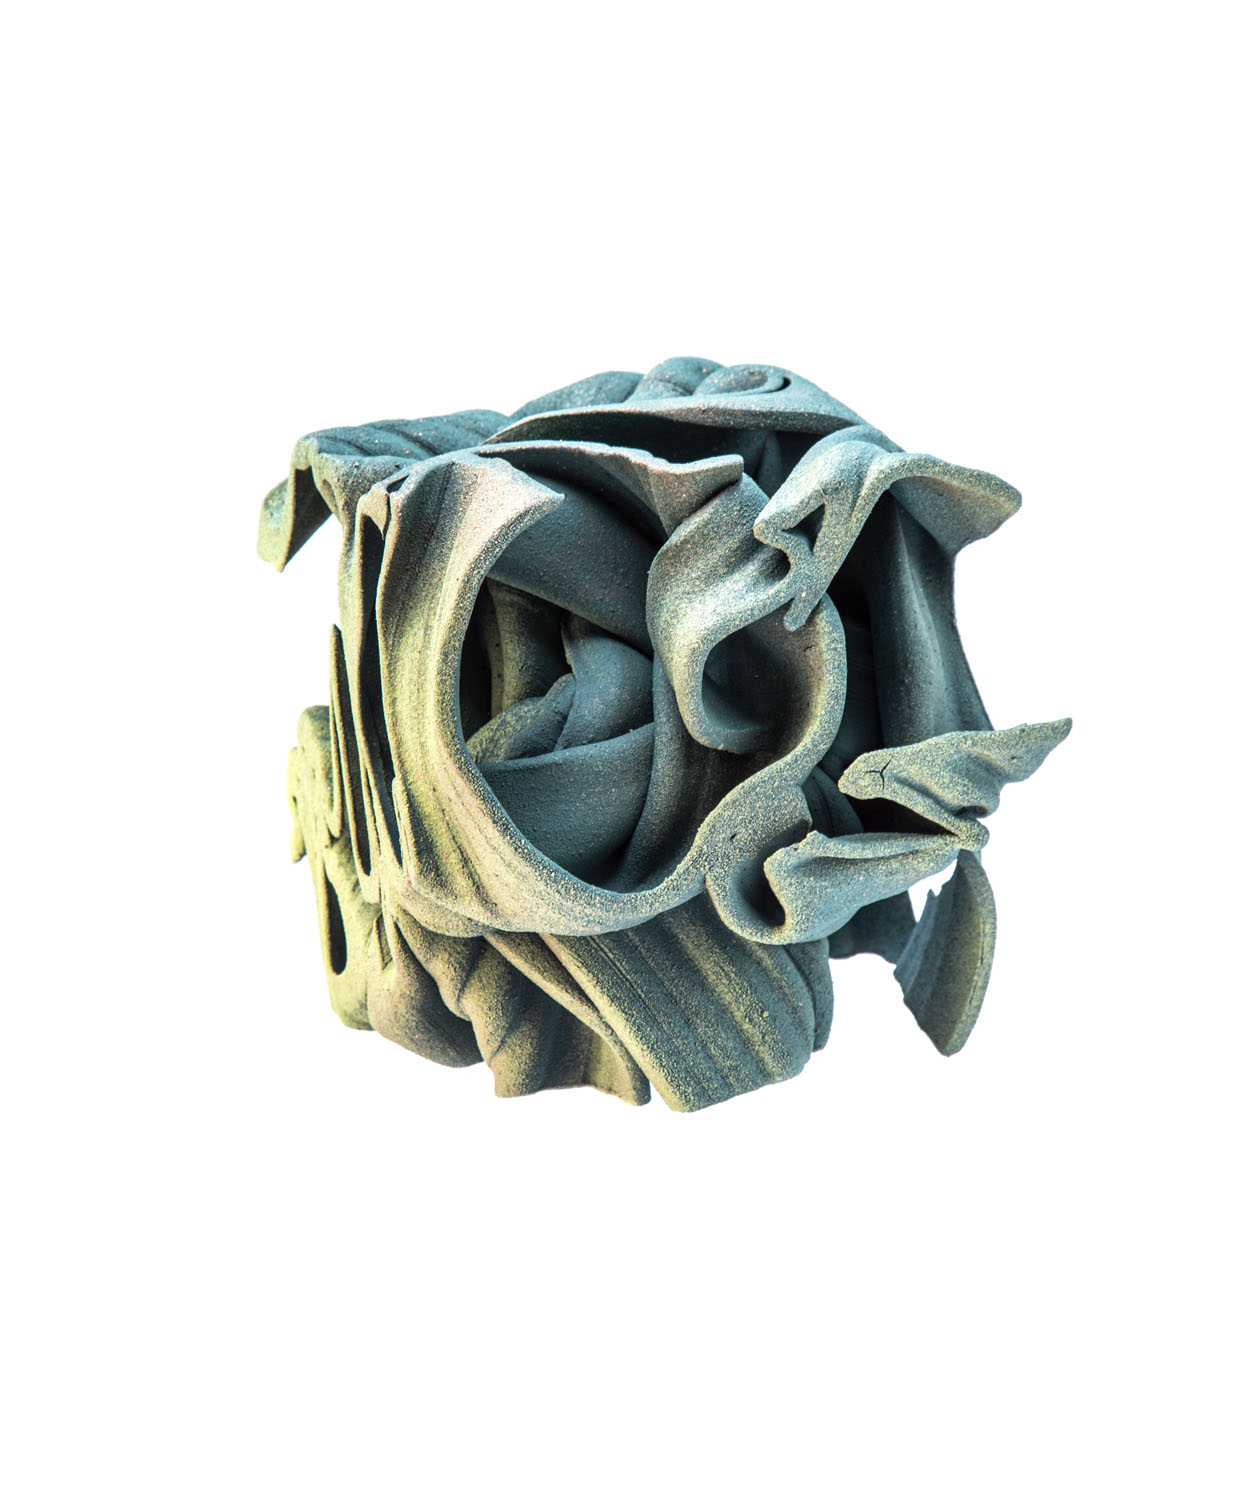 Z serii 'Cube', Green structure, 2020